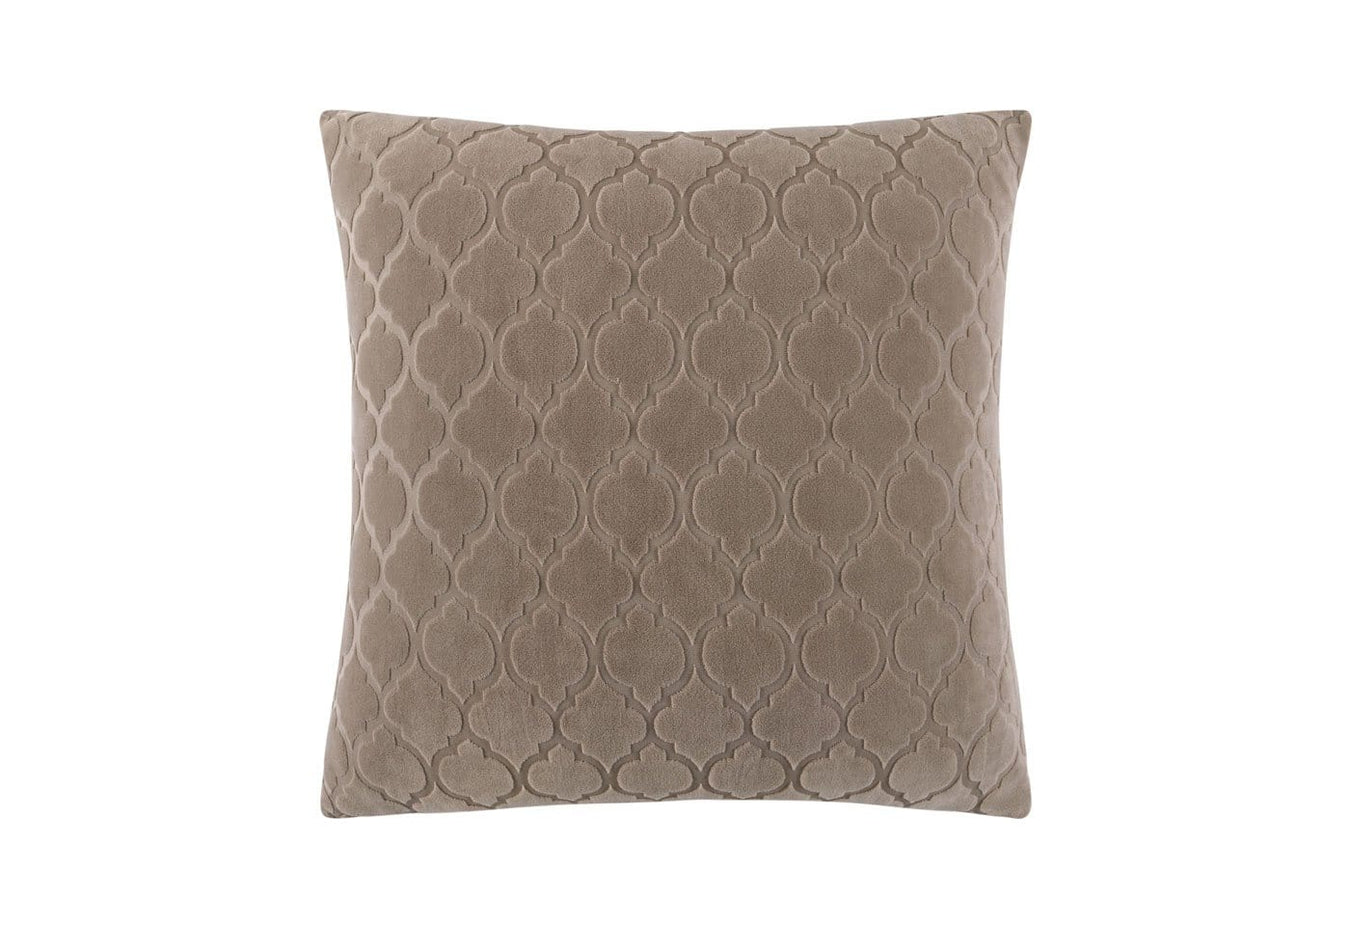 Stretch Grand Marrakesh 18 Inch Square Coordinating Pillow